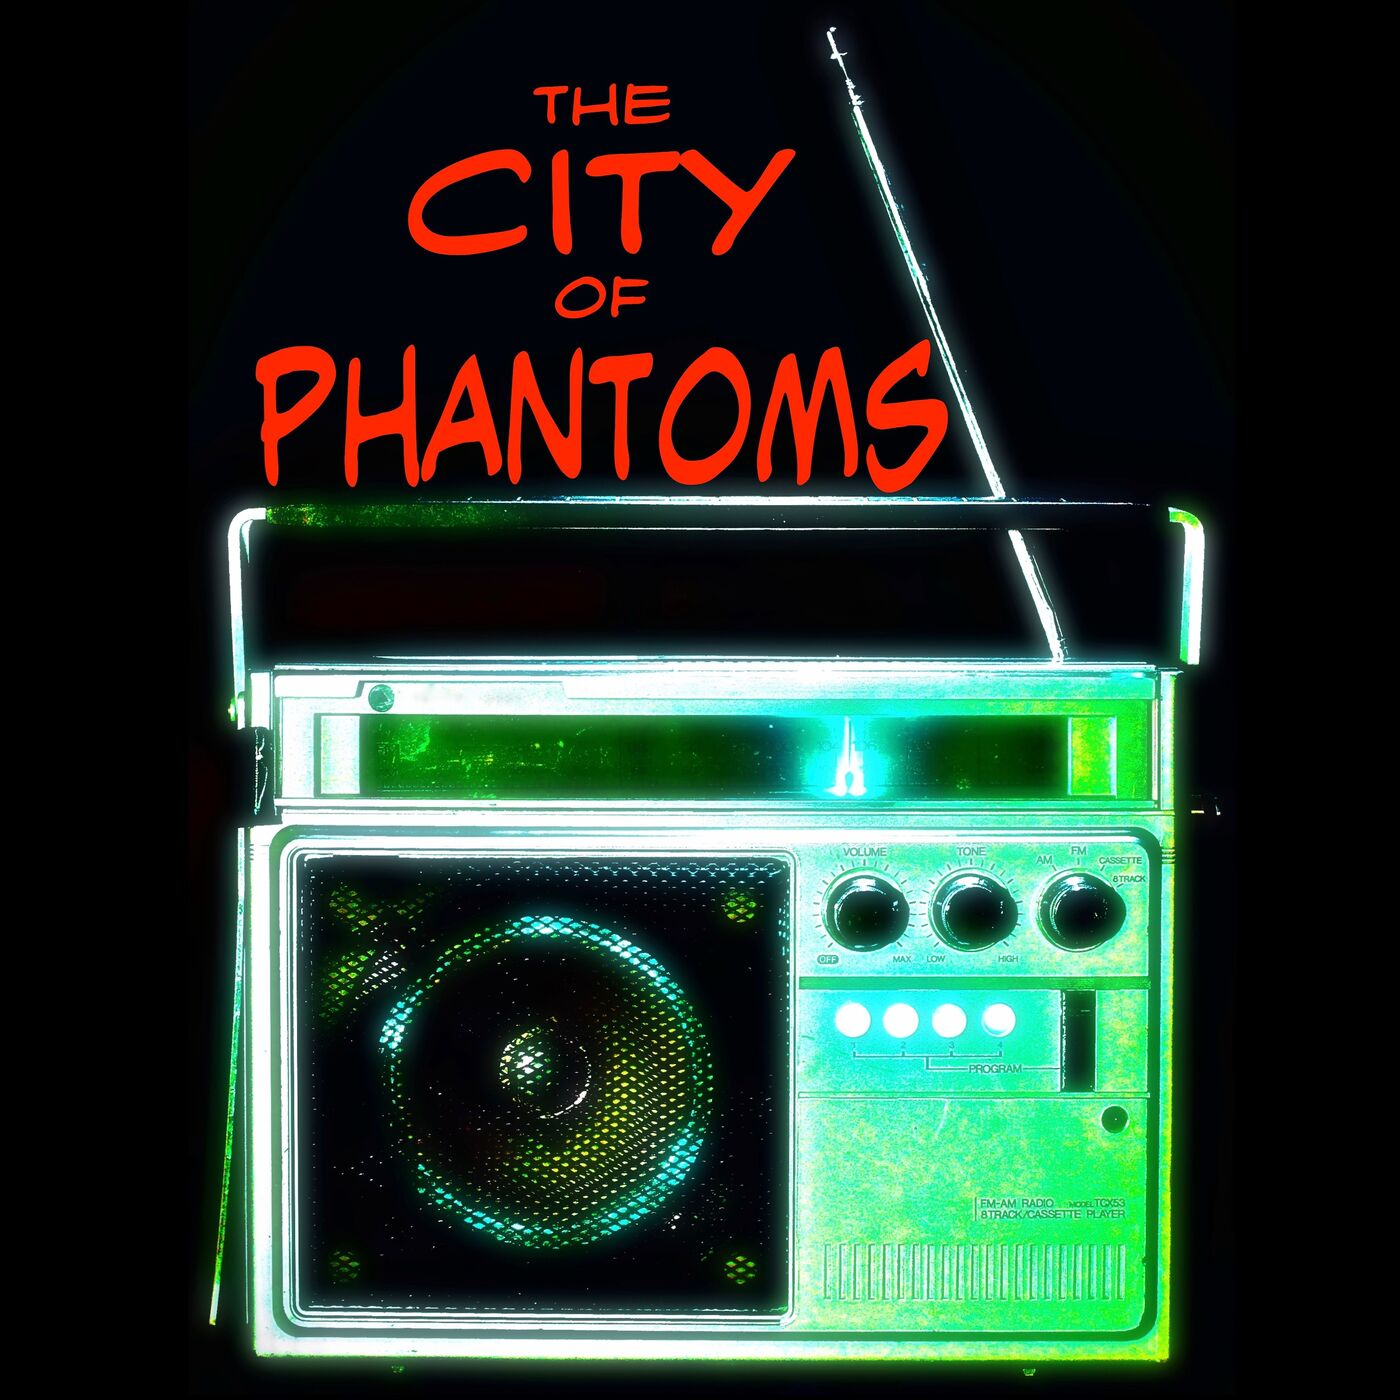 Chapter 10 The City of Phantoms